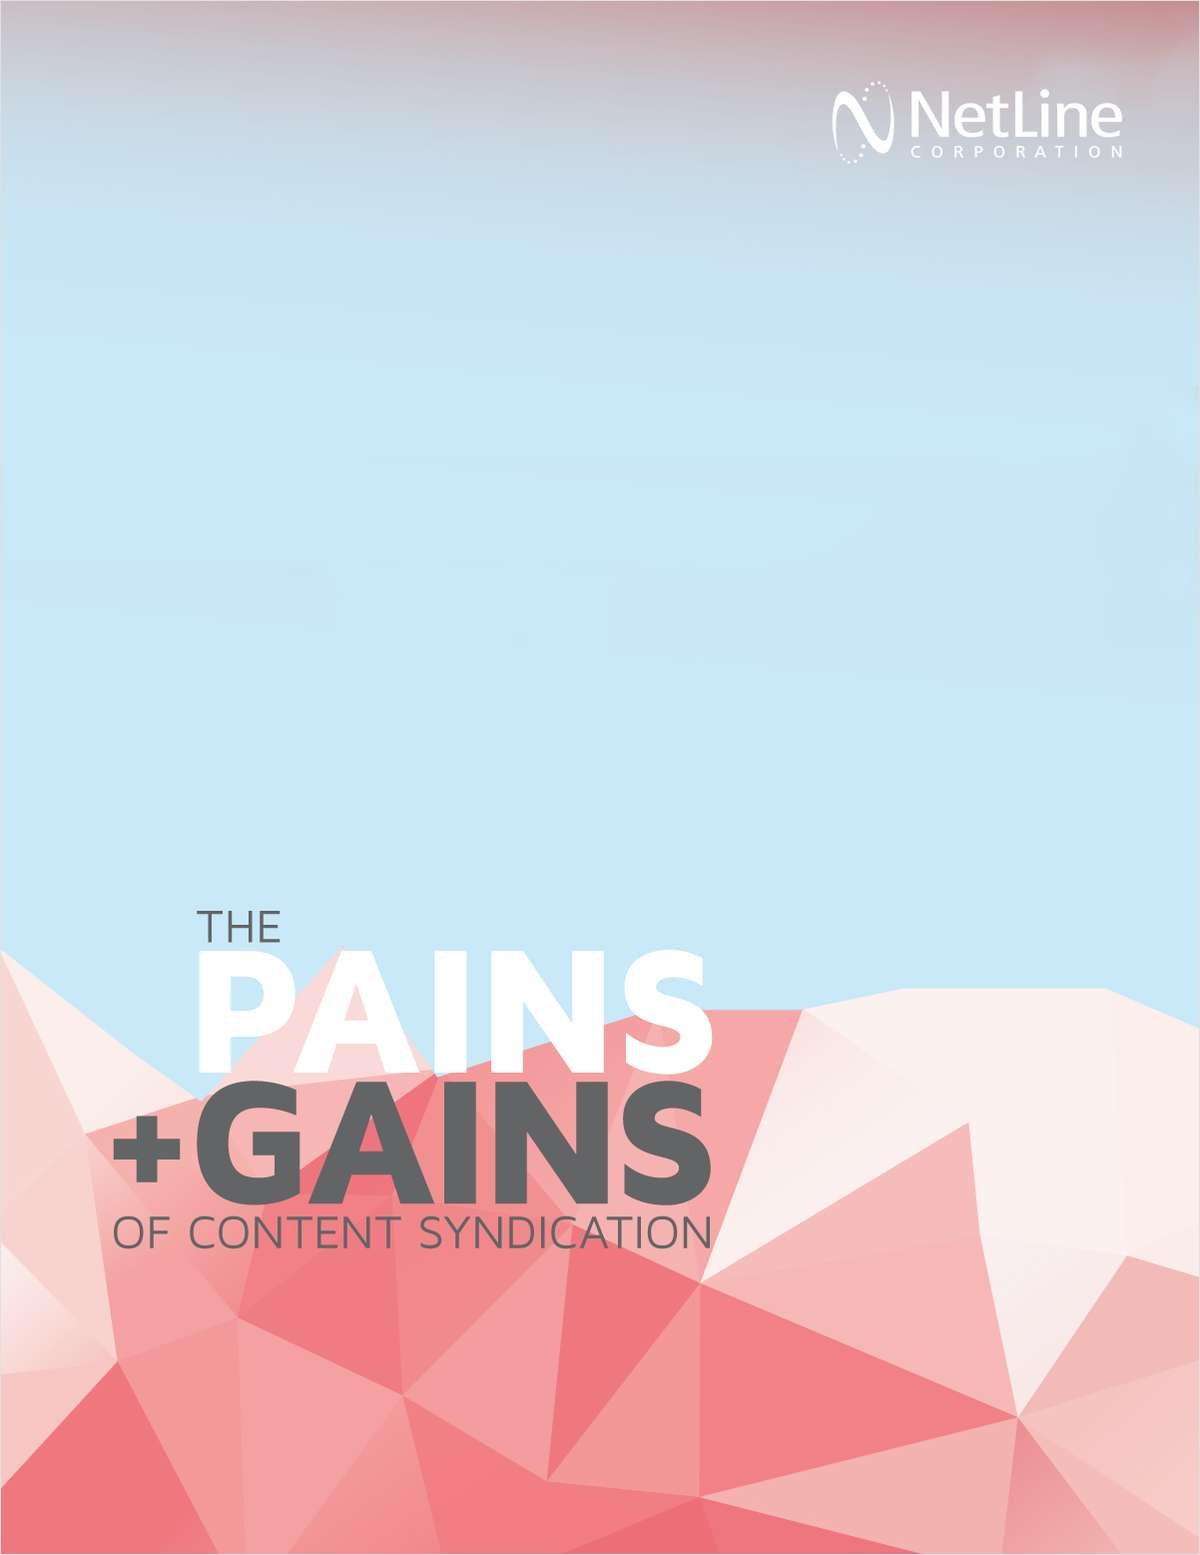 The Pains + Gains of Content Syndication